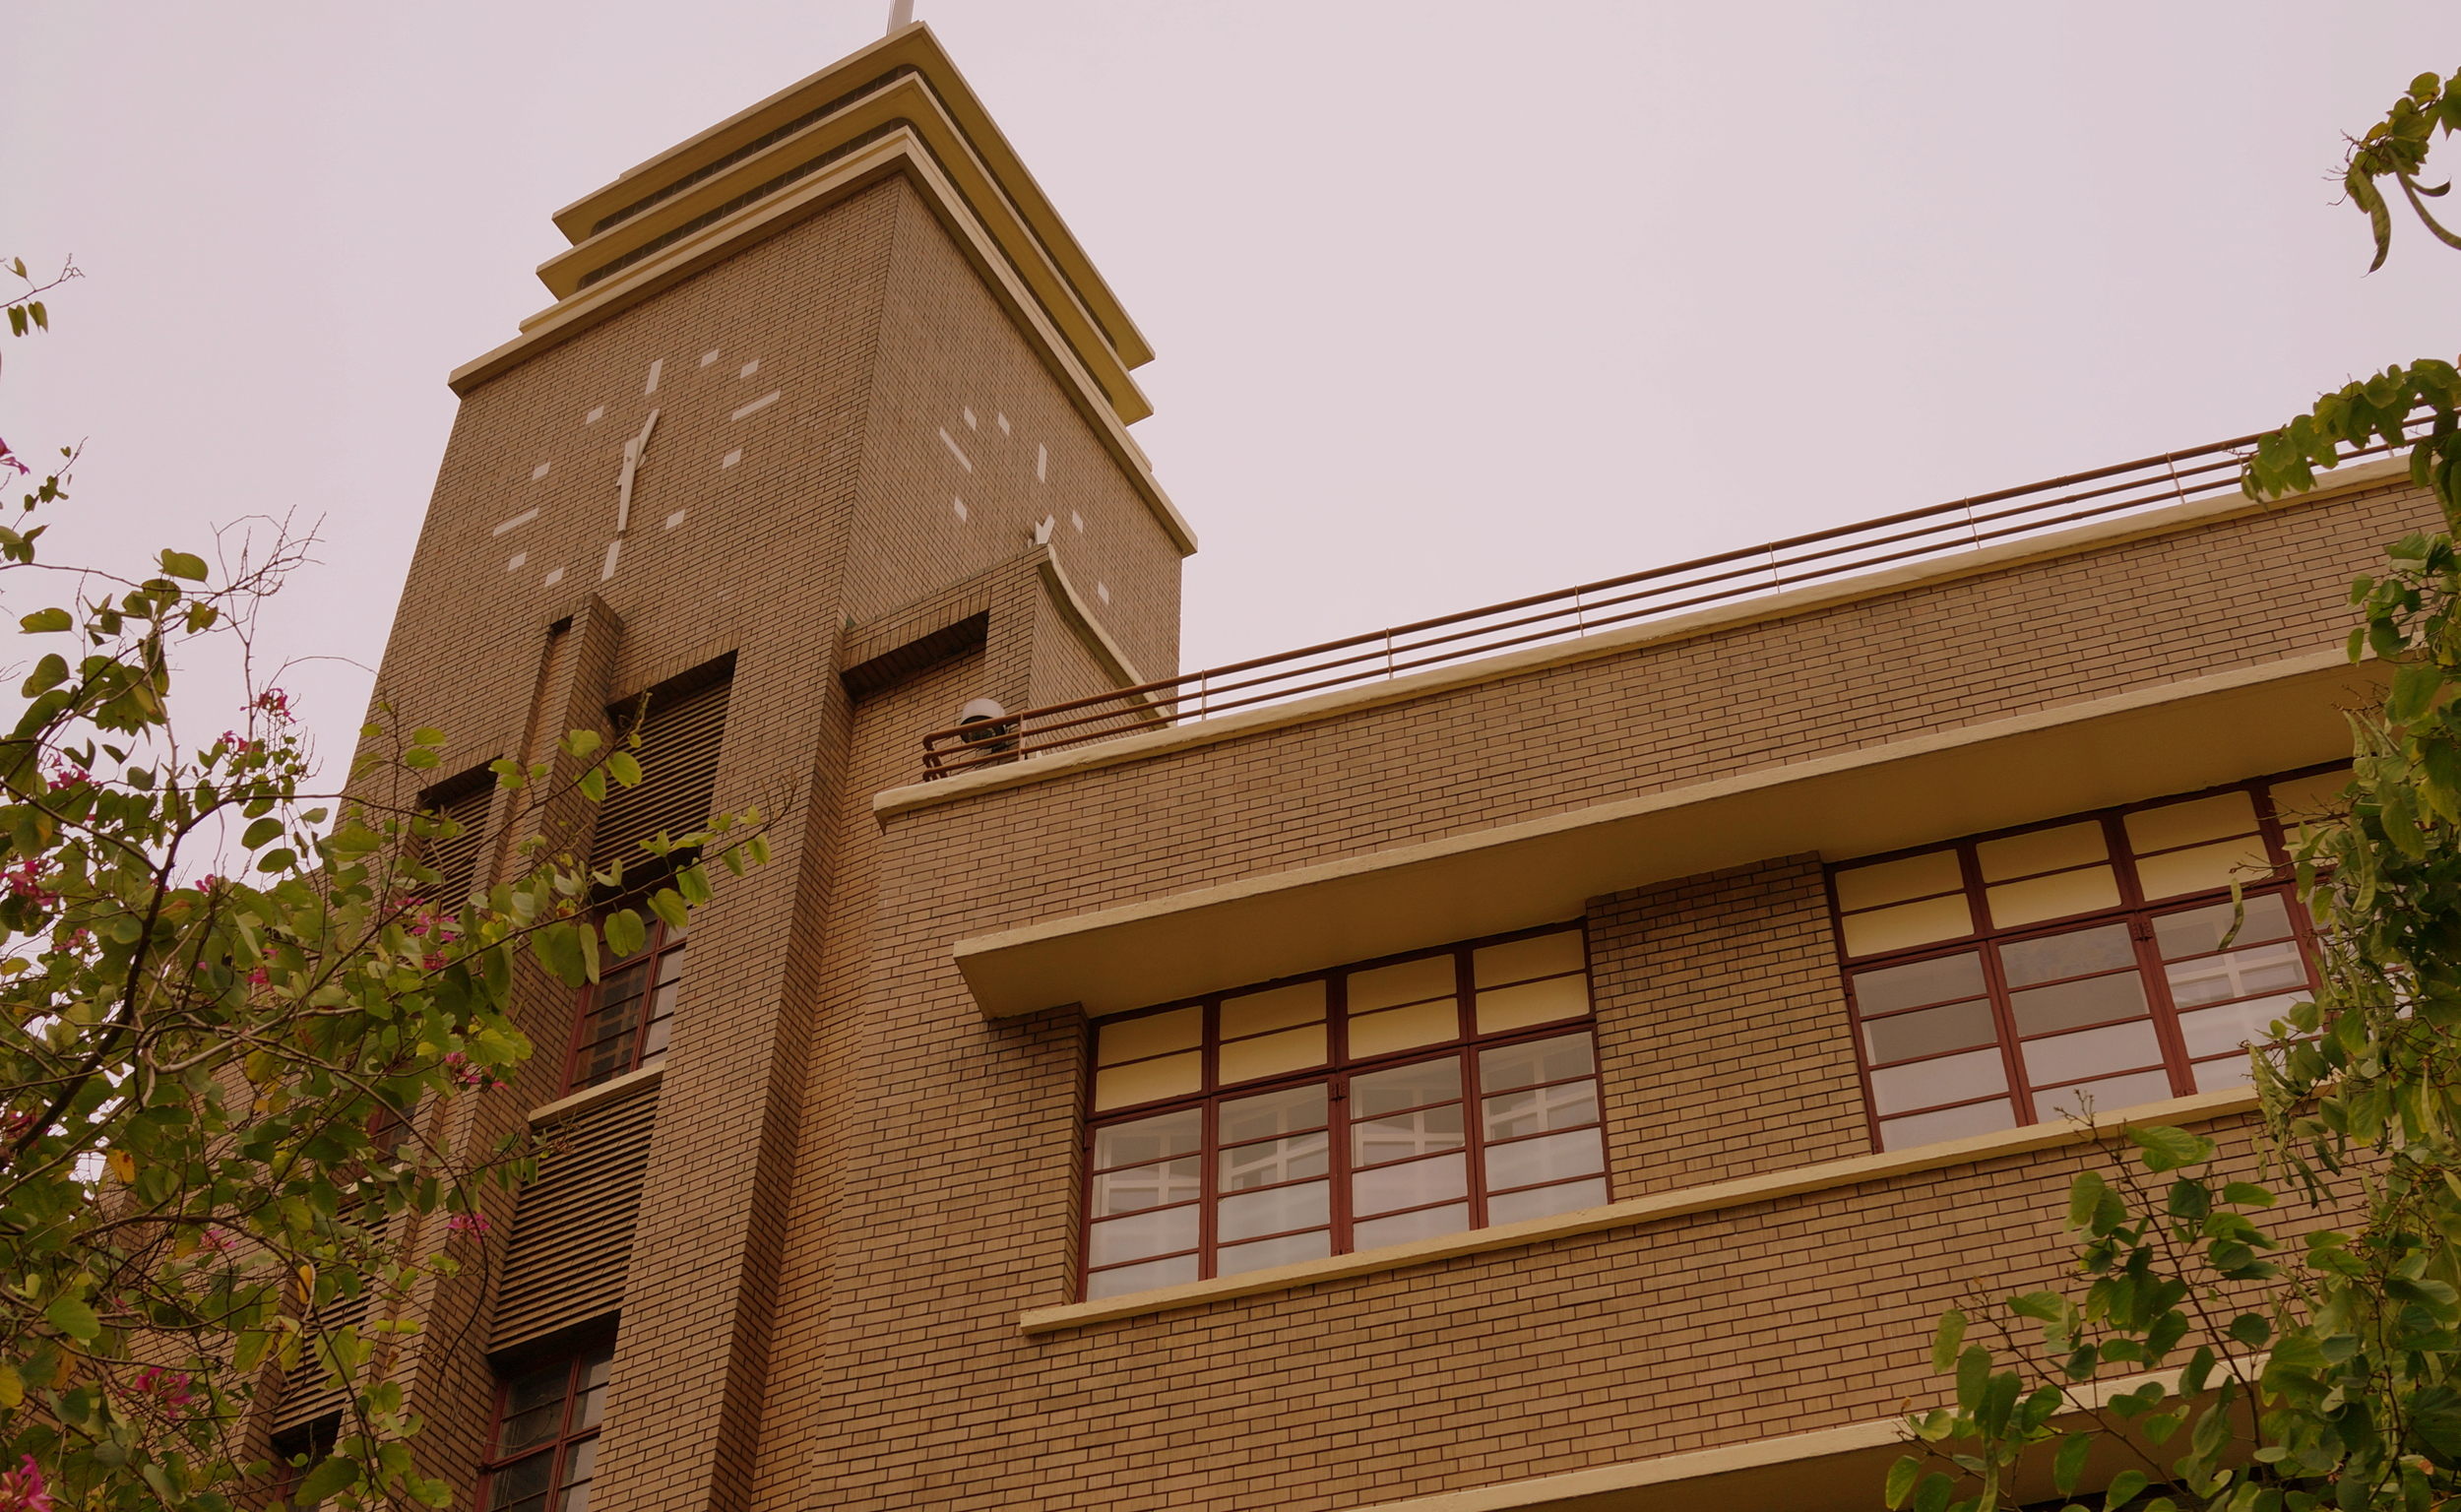 The old CLP Power headquarters in Kowloon, quite an iconic (if somewhat boring) old building.